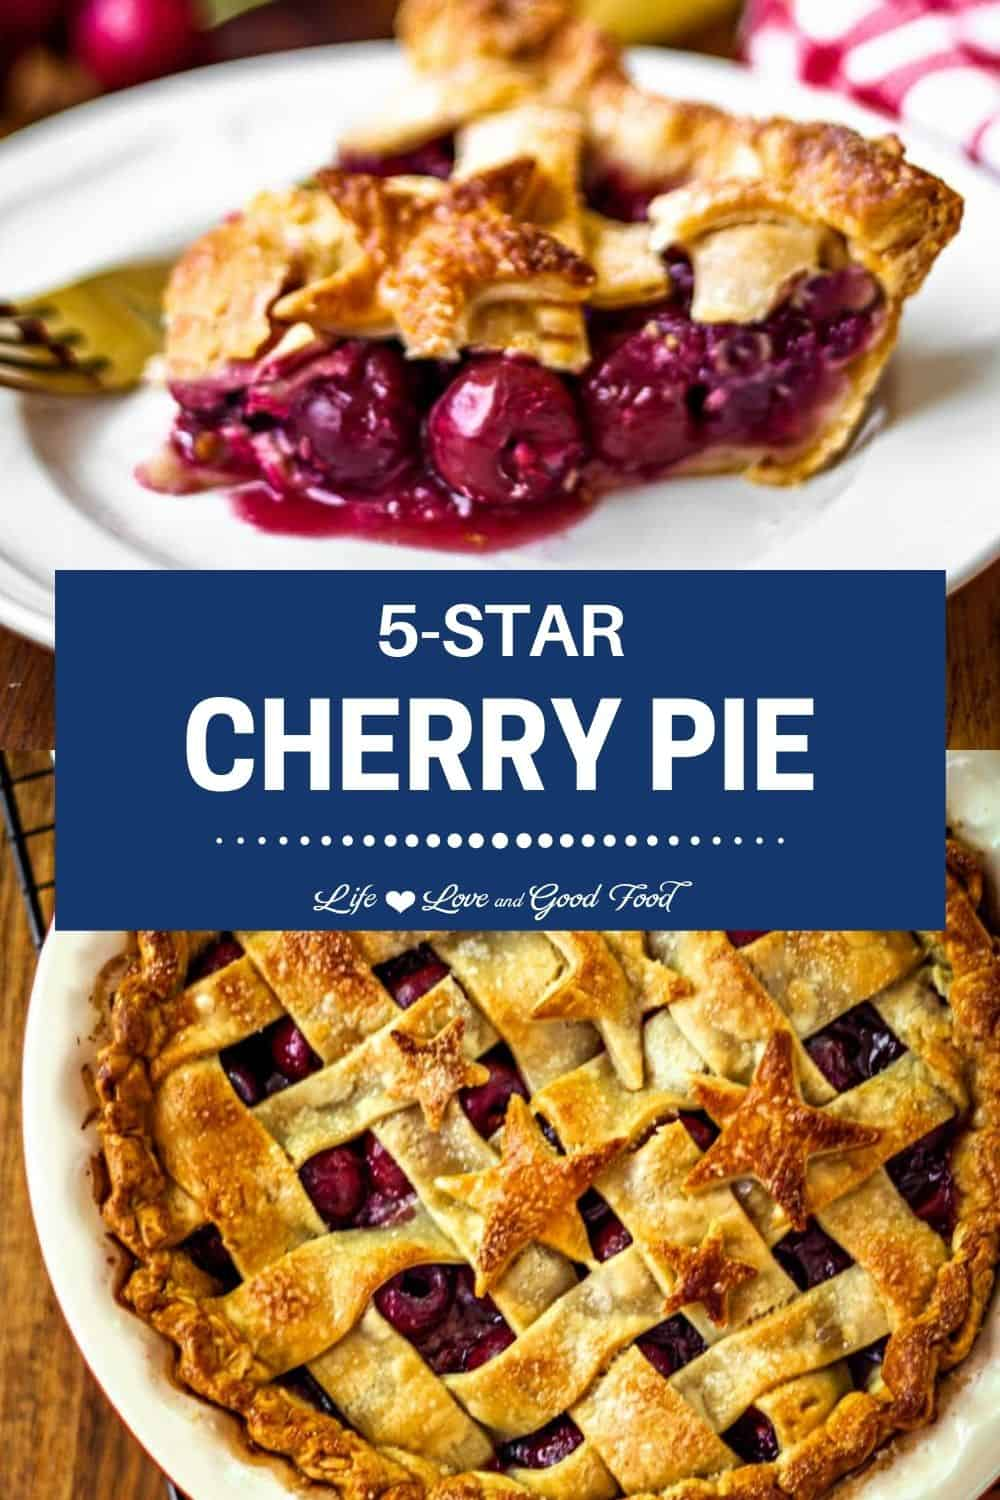 5-Star Cherry Pie with fresh Bing cherries and a hint of citrus flavor has a thick and delicious filling that's perfectly sweetened and irresistible. A classic all-American dessert, this easy homemade cherry pie boasts a secret ingredient that absolutely shoots it over the top. Bake this fresh cherry pie recipe in a double pie crust—refrigerated or homemade—with a lattice top to allow the sweet, bubbly filling to peek through. Serve plain or a la mode with a scoop of vanilla ice cream.